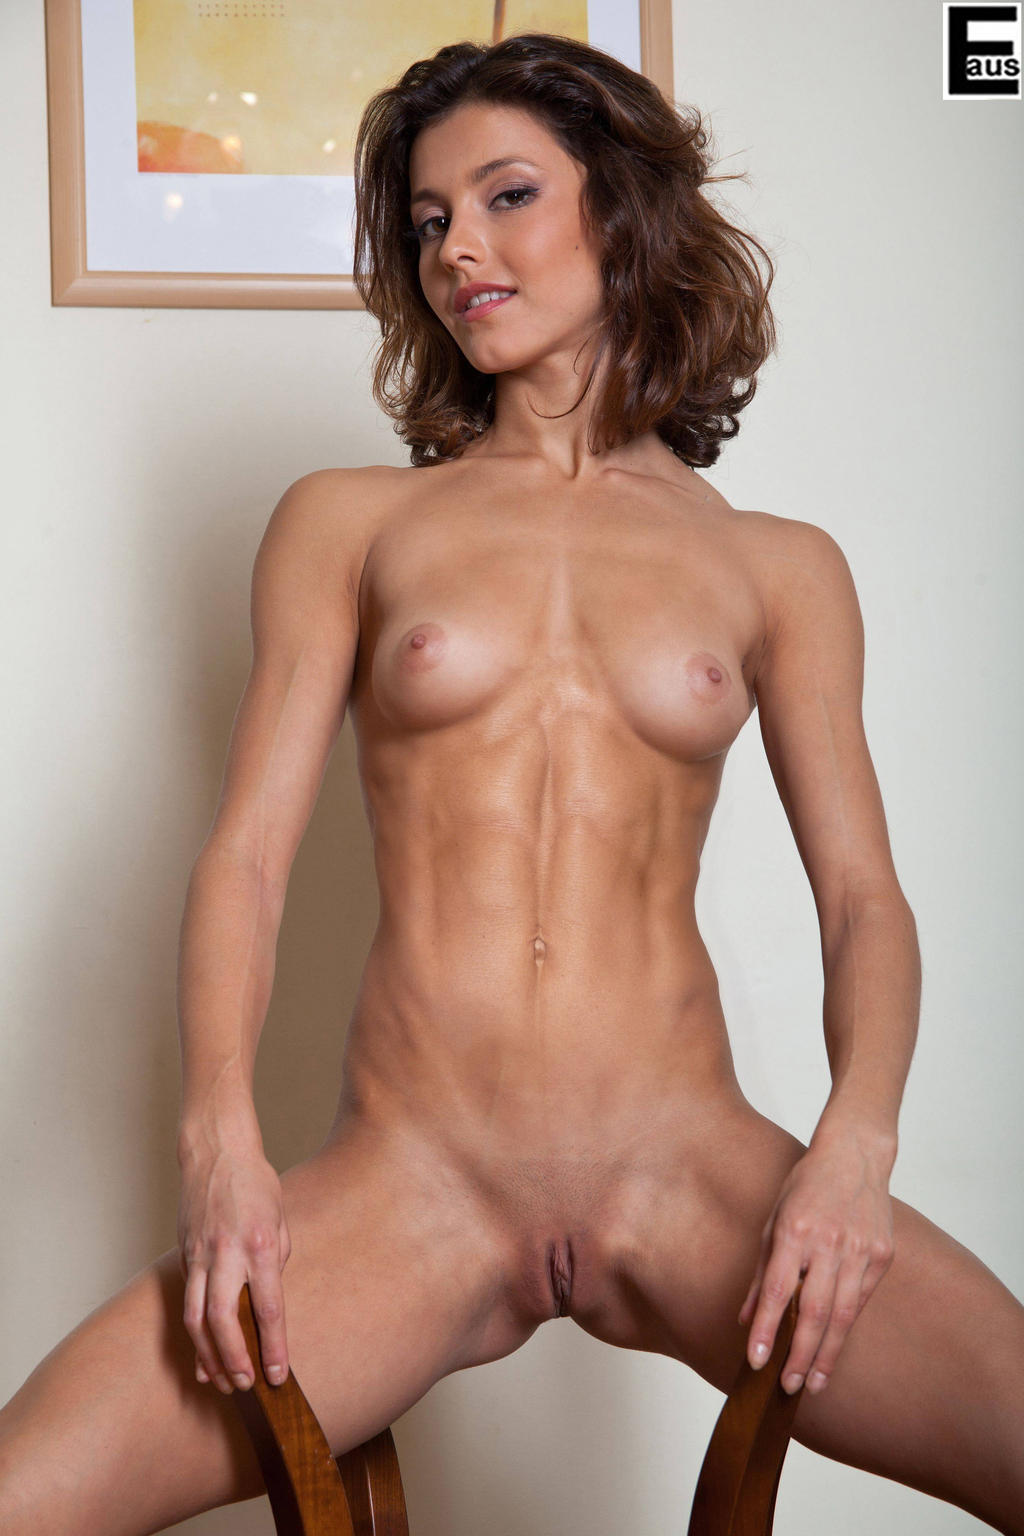 Hot woman body loving